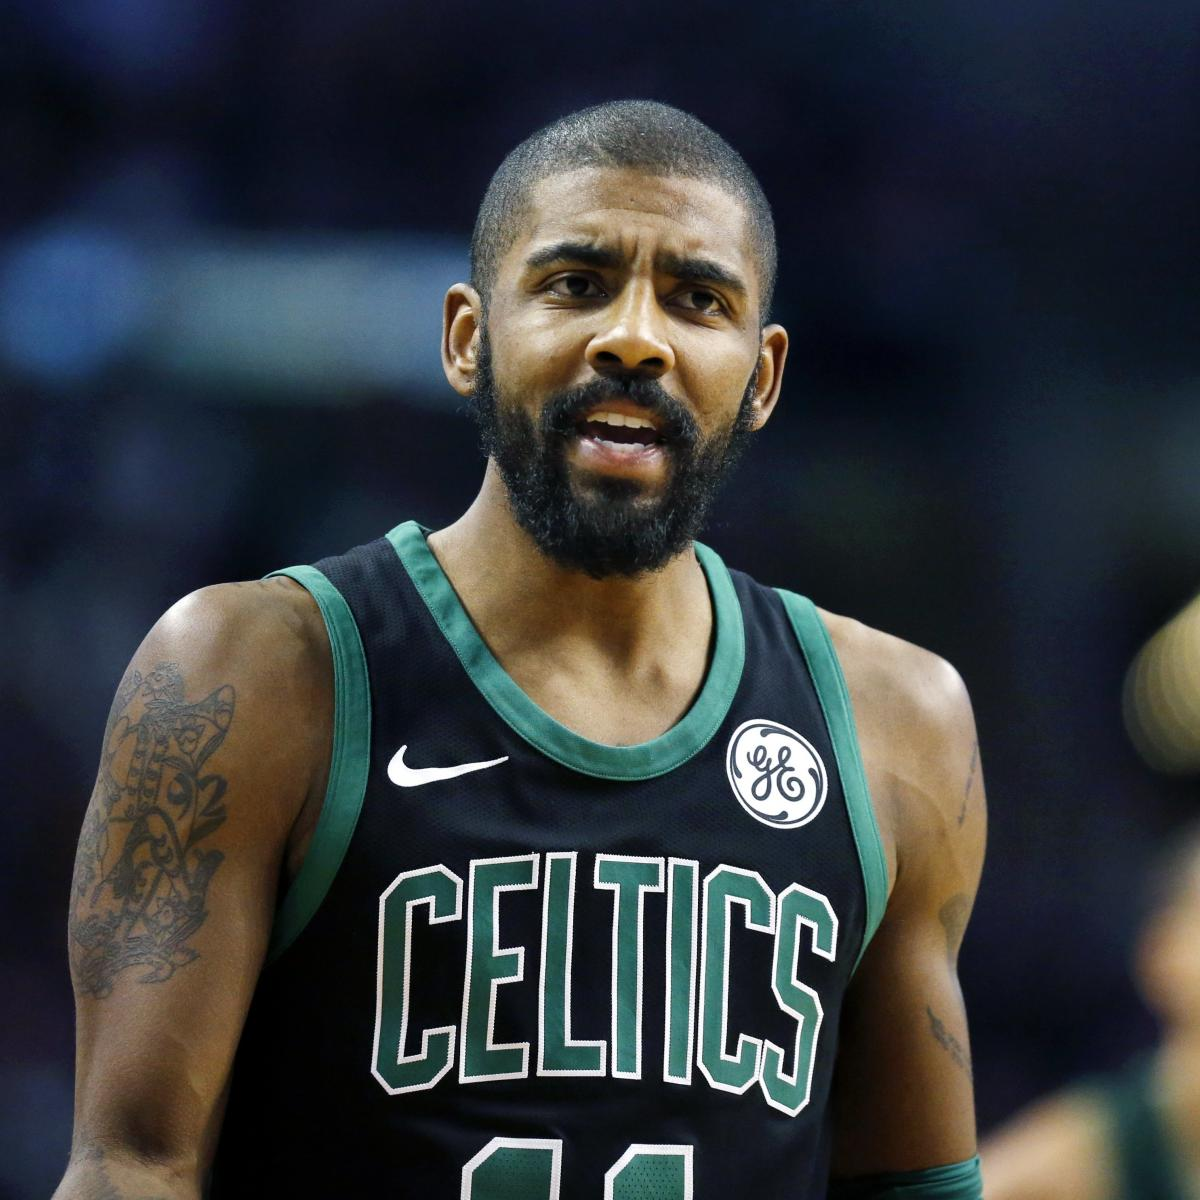 Report: Kyrie Irving Trade For Paul George, Eric Bledsoe